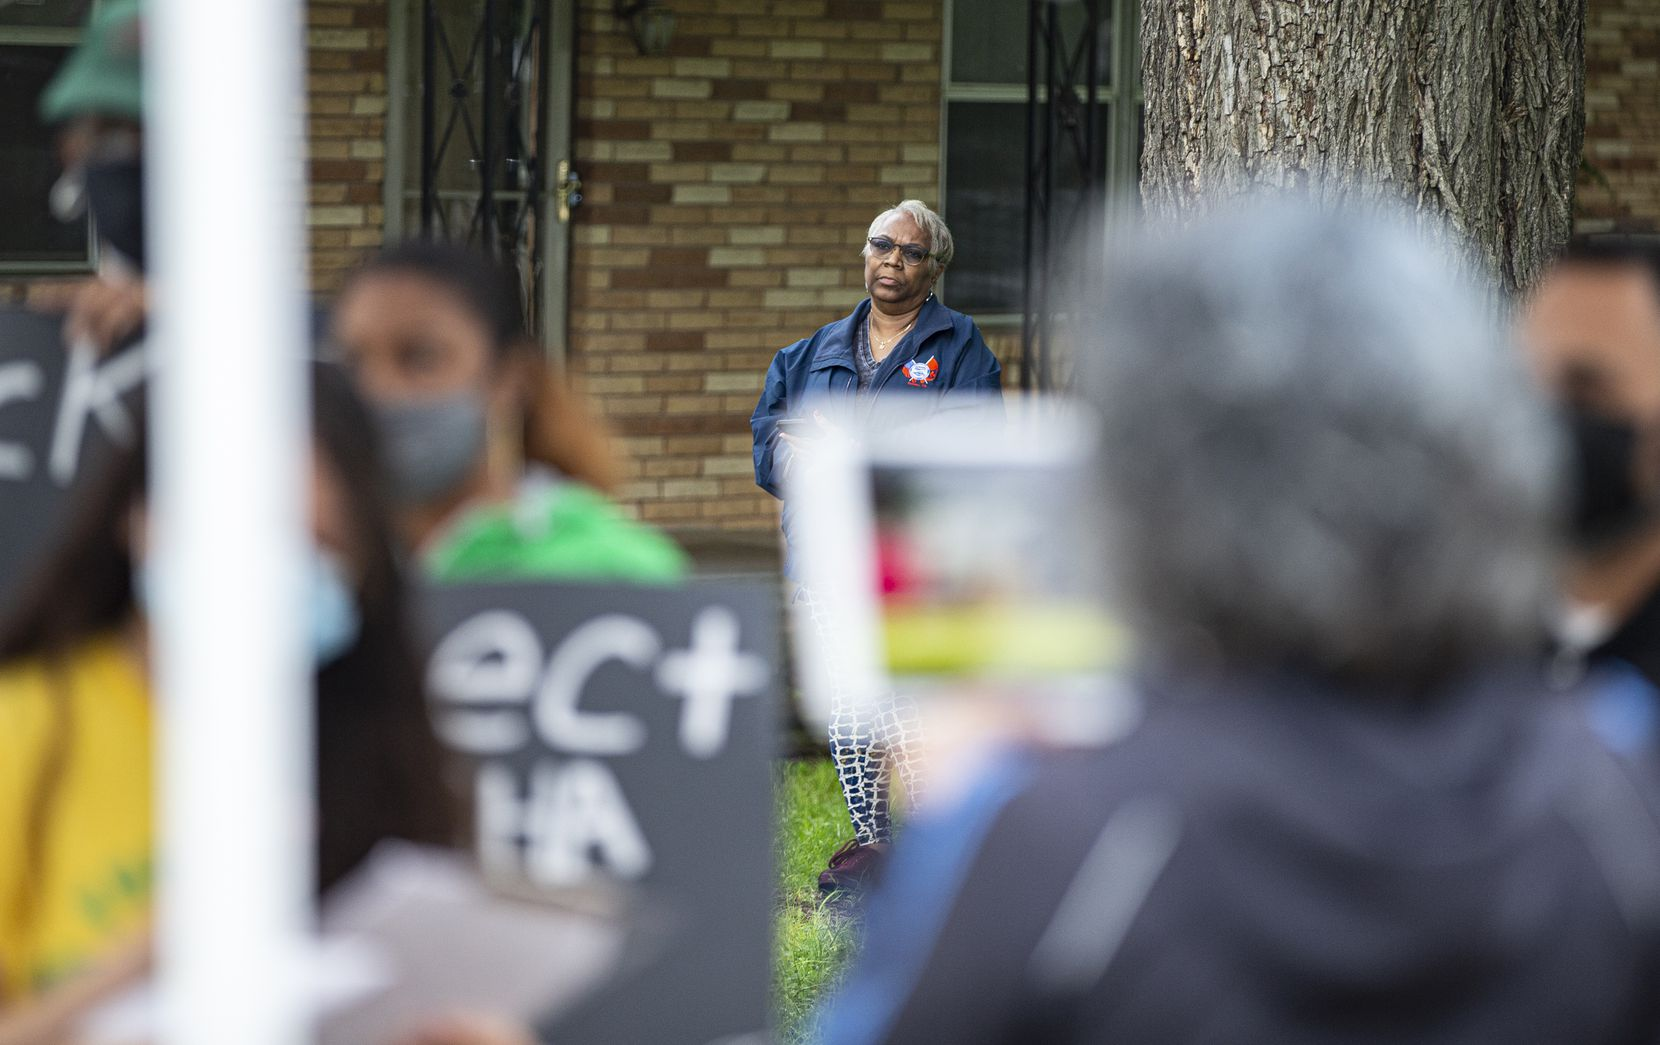 Southern Sector Rising leader Marsha Jackson looked on as community advocates provided updates on the latest industrial problems in the Floral Farms neighborhood.